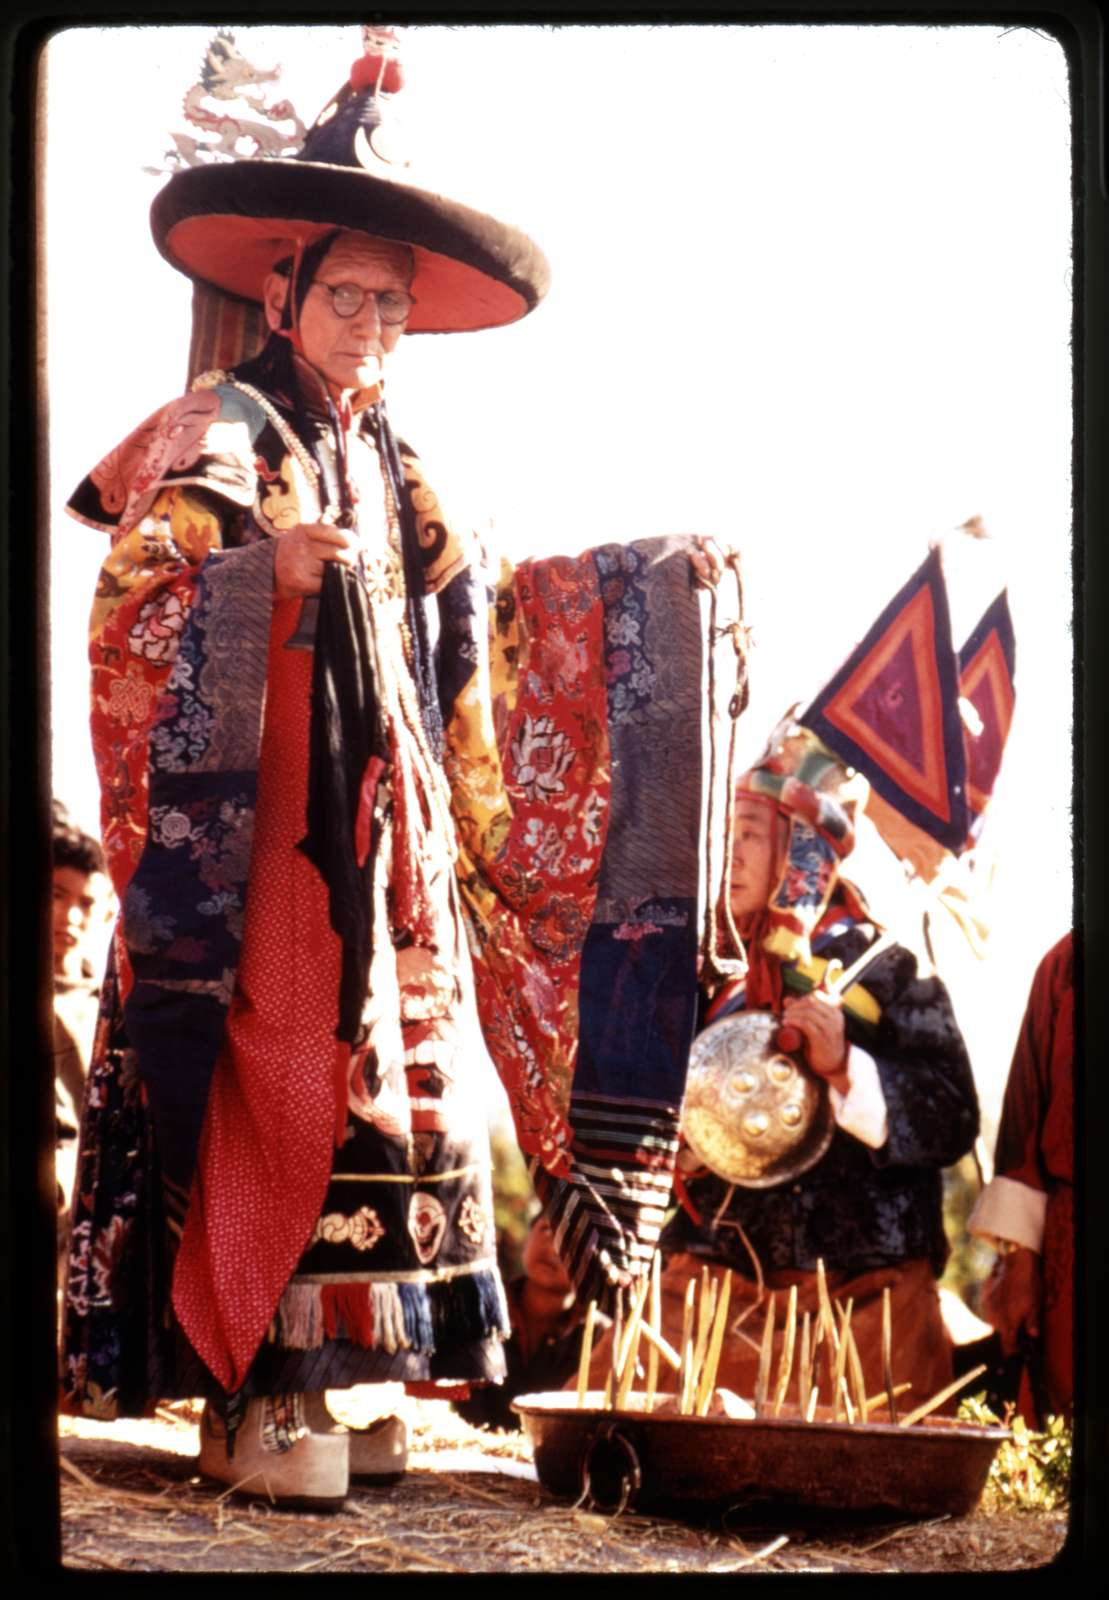 [Black Hat Lama preparing for religious sacrifice at the New Year's ceremony, Sikkim]